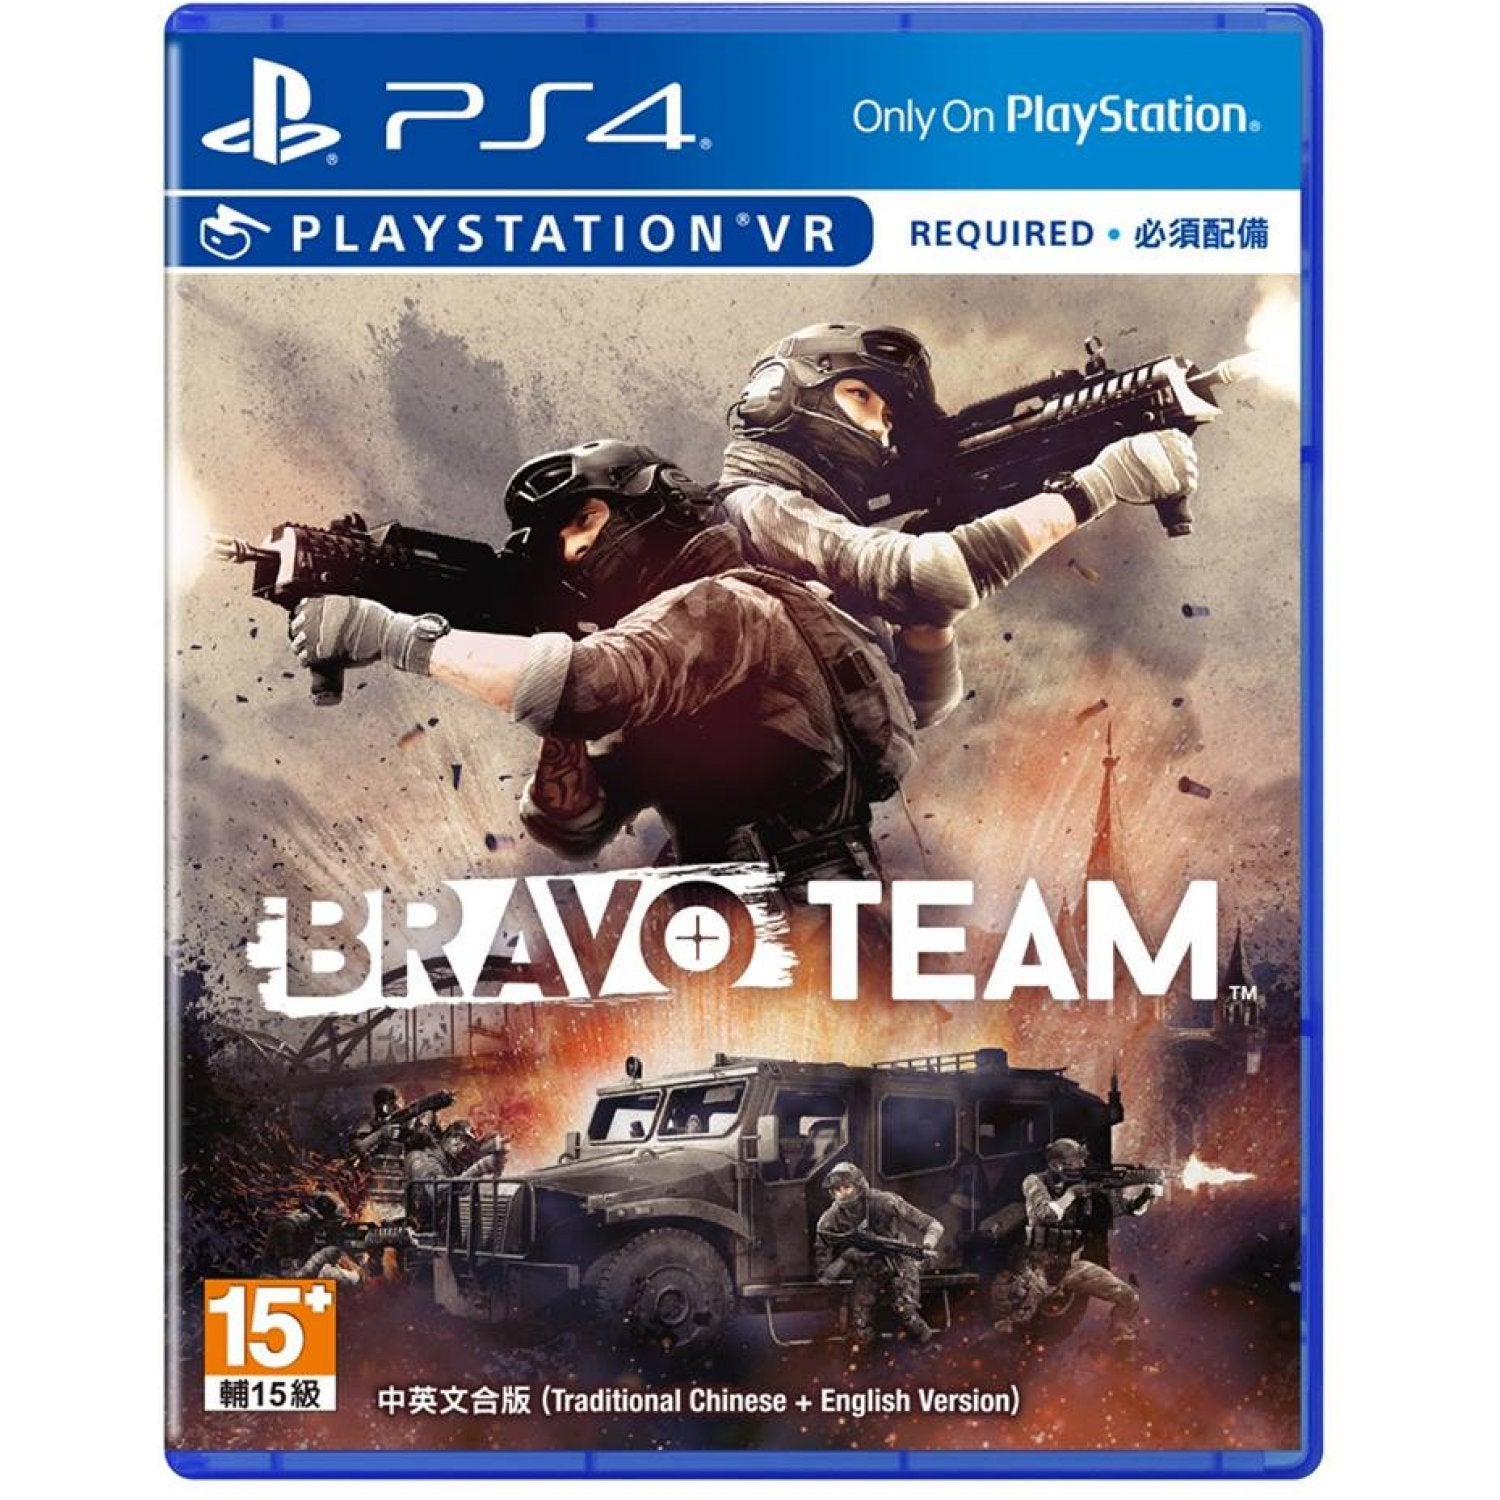 Ps4 Bravo Team With Aim Controller Bundle Vr Required Persona 5 Steelbook Edition Reg1 English